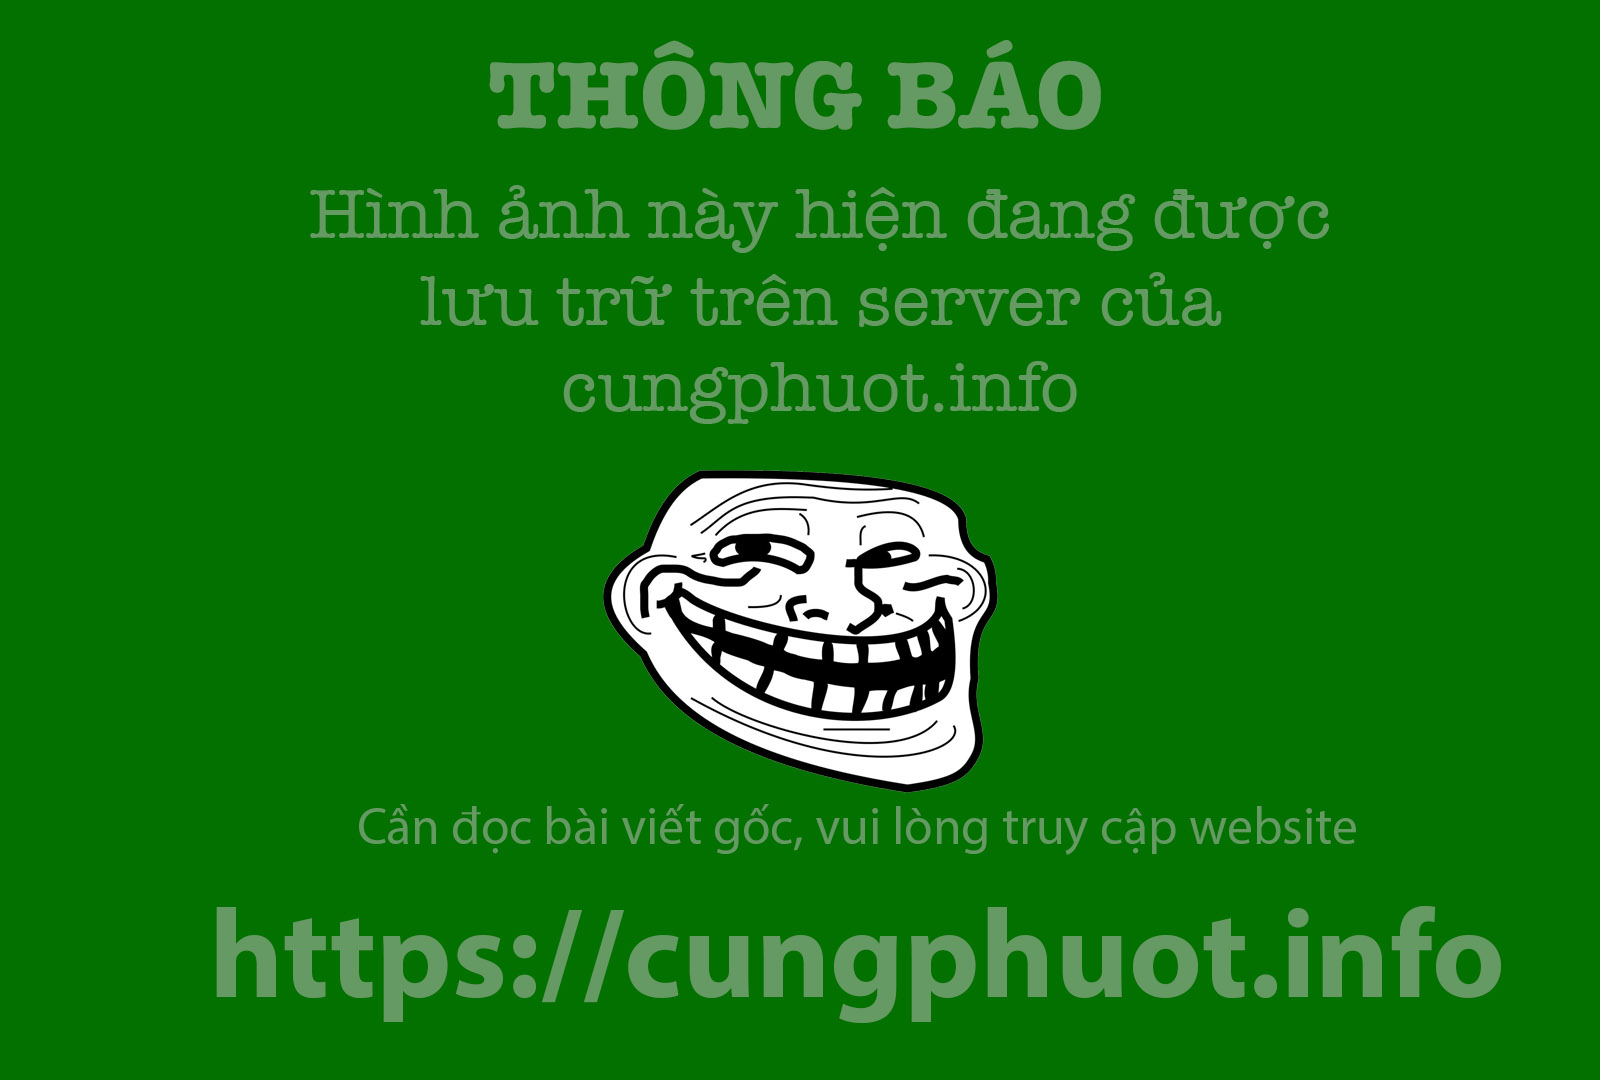 May von nui tren cong troi Muong Long hinh anh 5